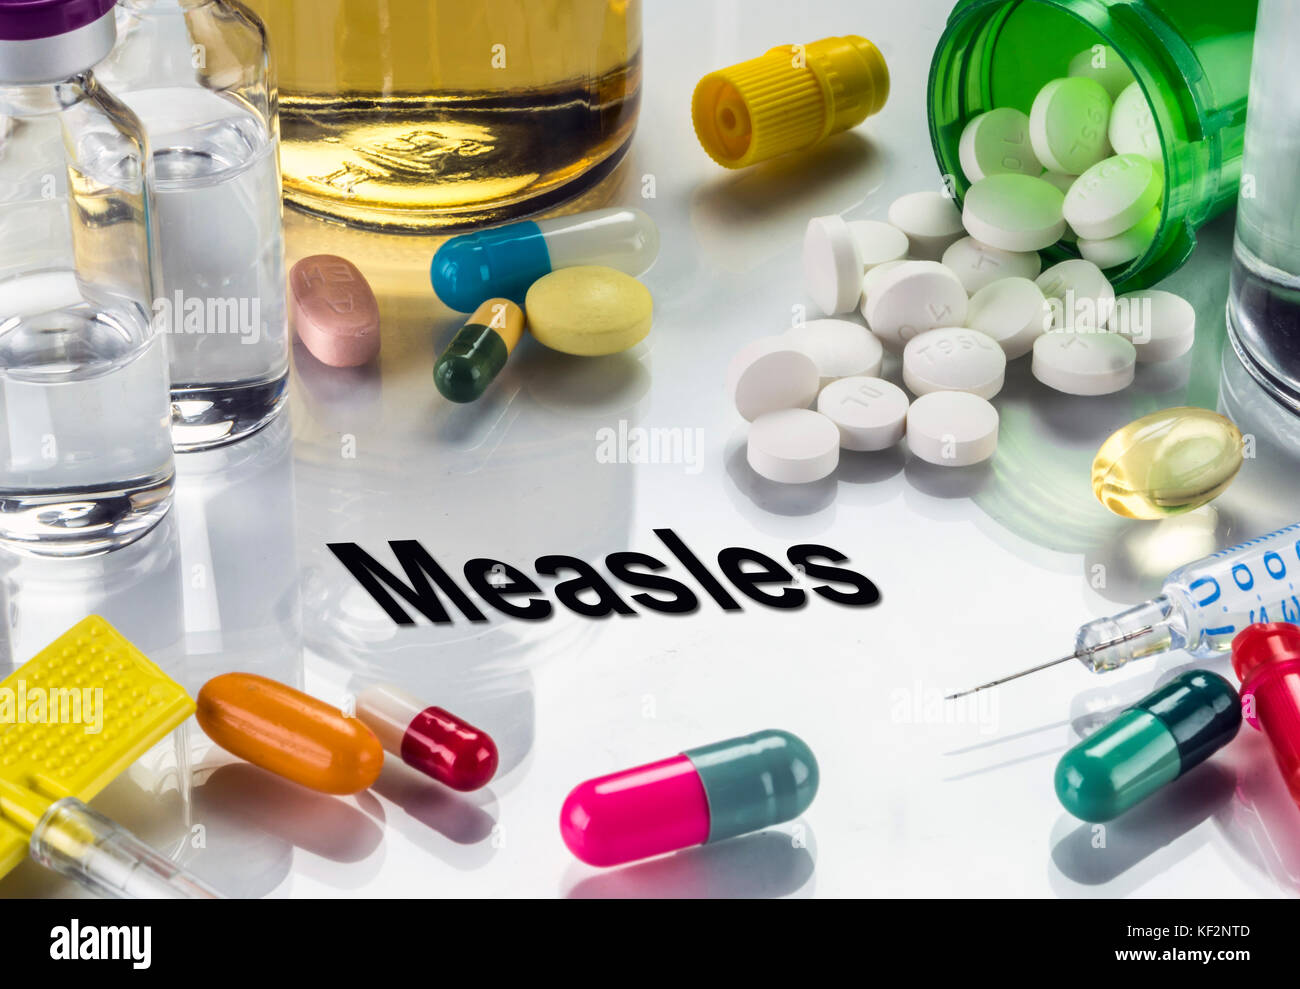 Measles, medicines as concept of ordinary treatment, conceptual image - Stock Image